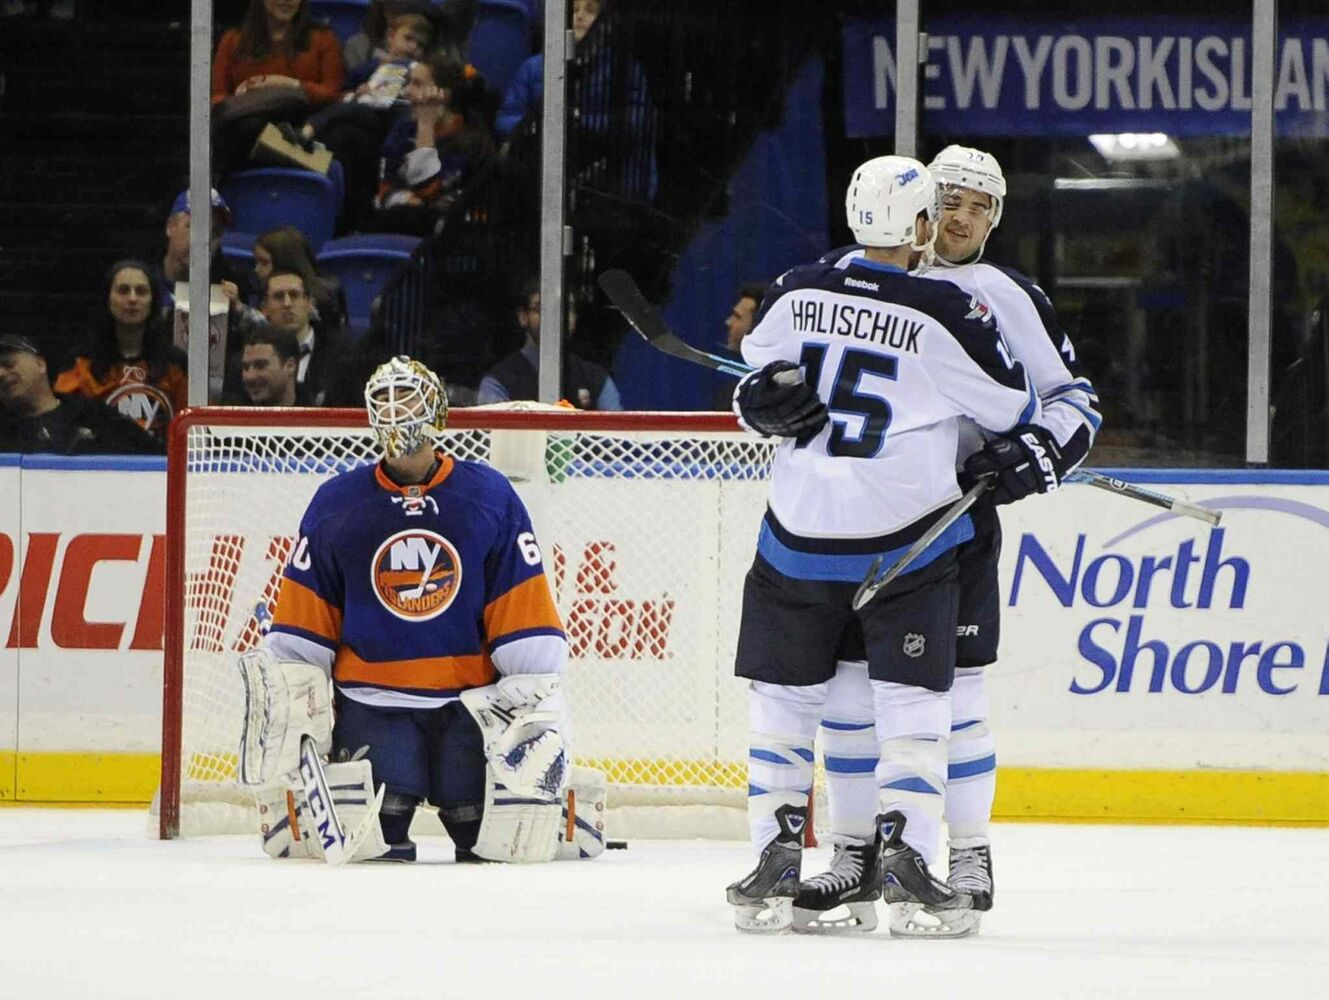 New York Islanders goalie Kevin Poulin (left) reacts as Winnipeg Jets forward Devin Setoguchi (right) celebrates his goal with Matt Halischuk in the second period. (Kathy Kmonicek / The Associated Press)